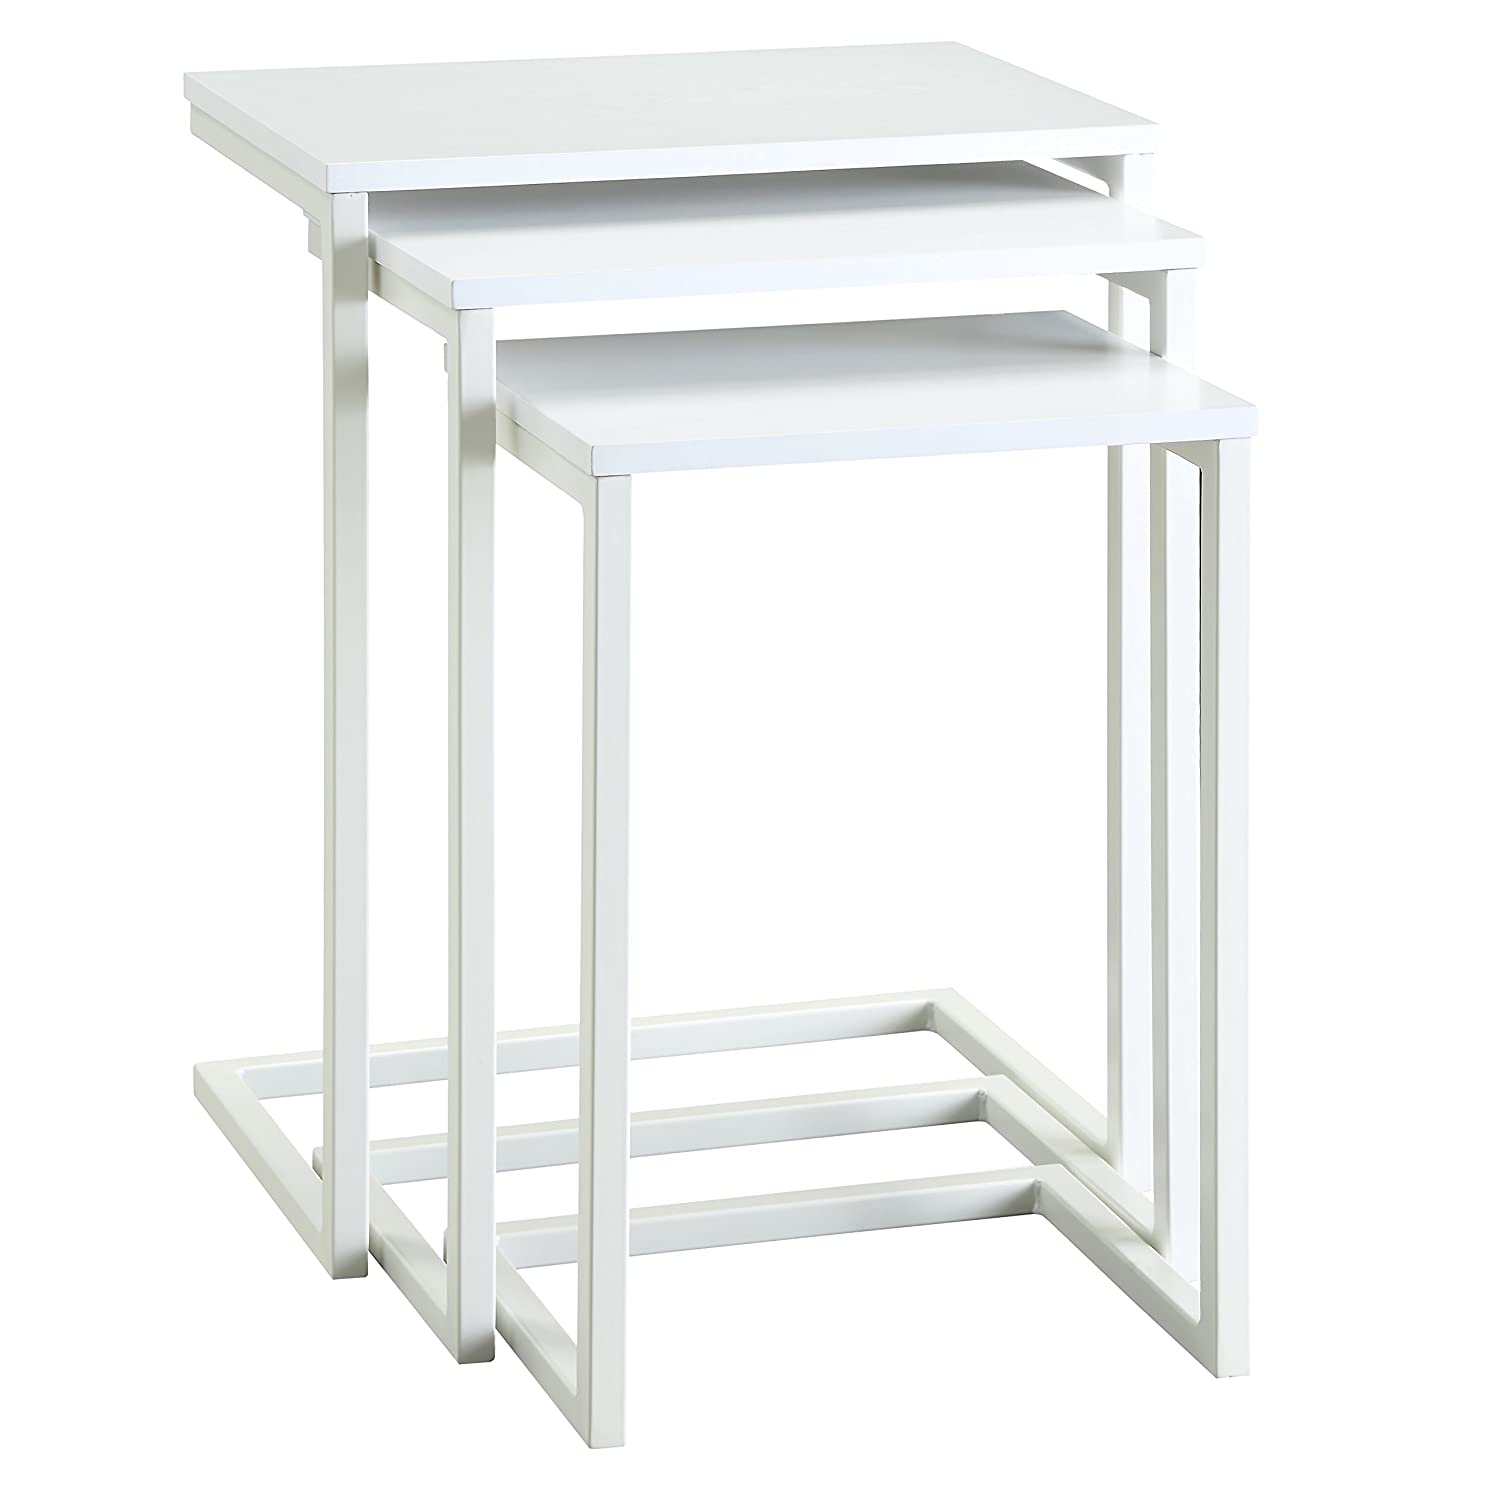 Carolina Chair and Table Madison Nesting Table Set, White 1WSS-2016WHT